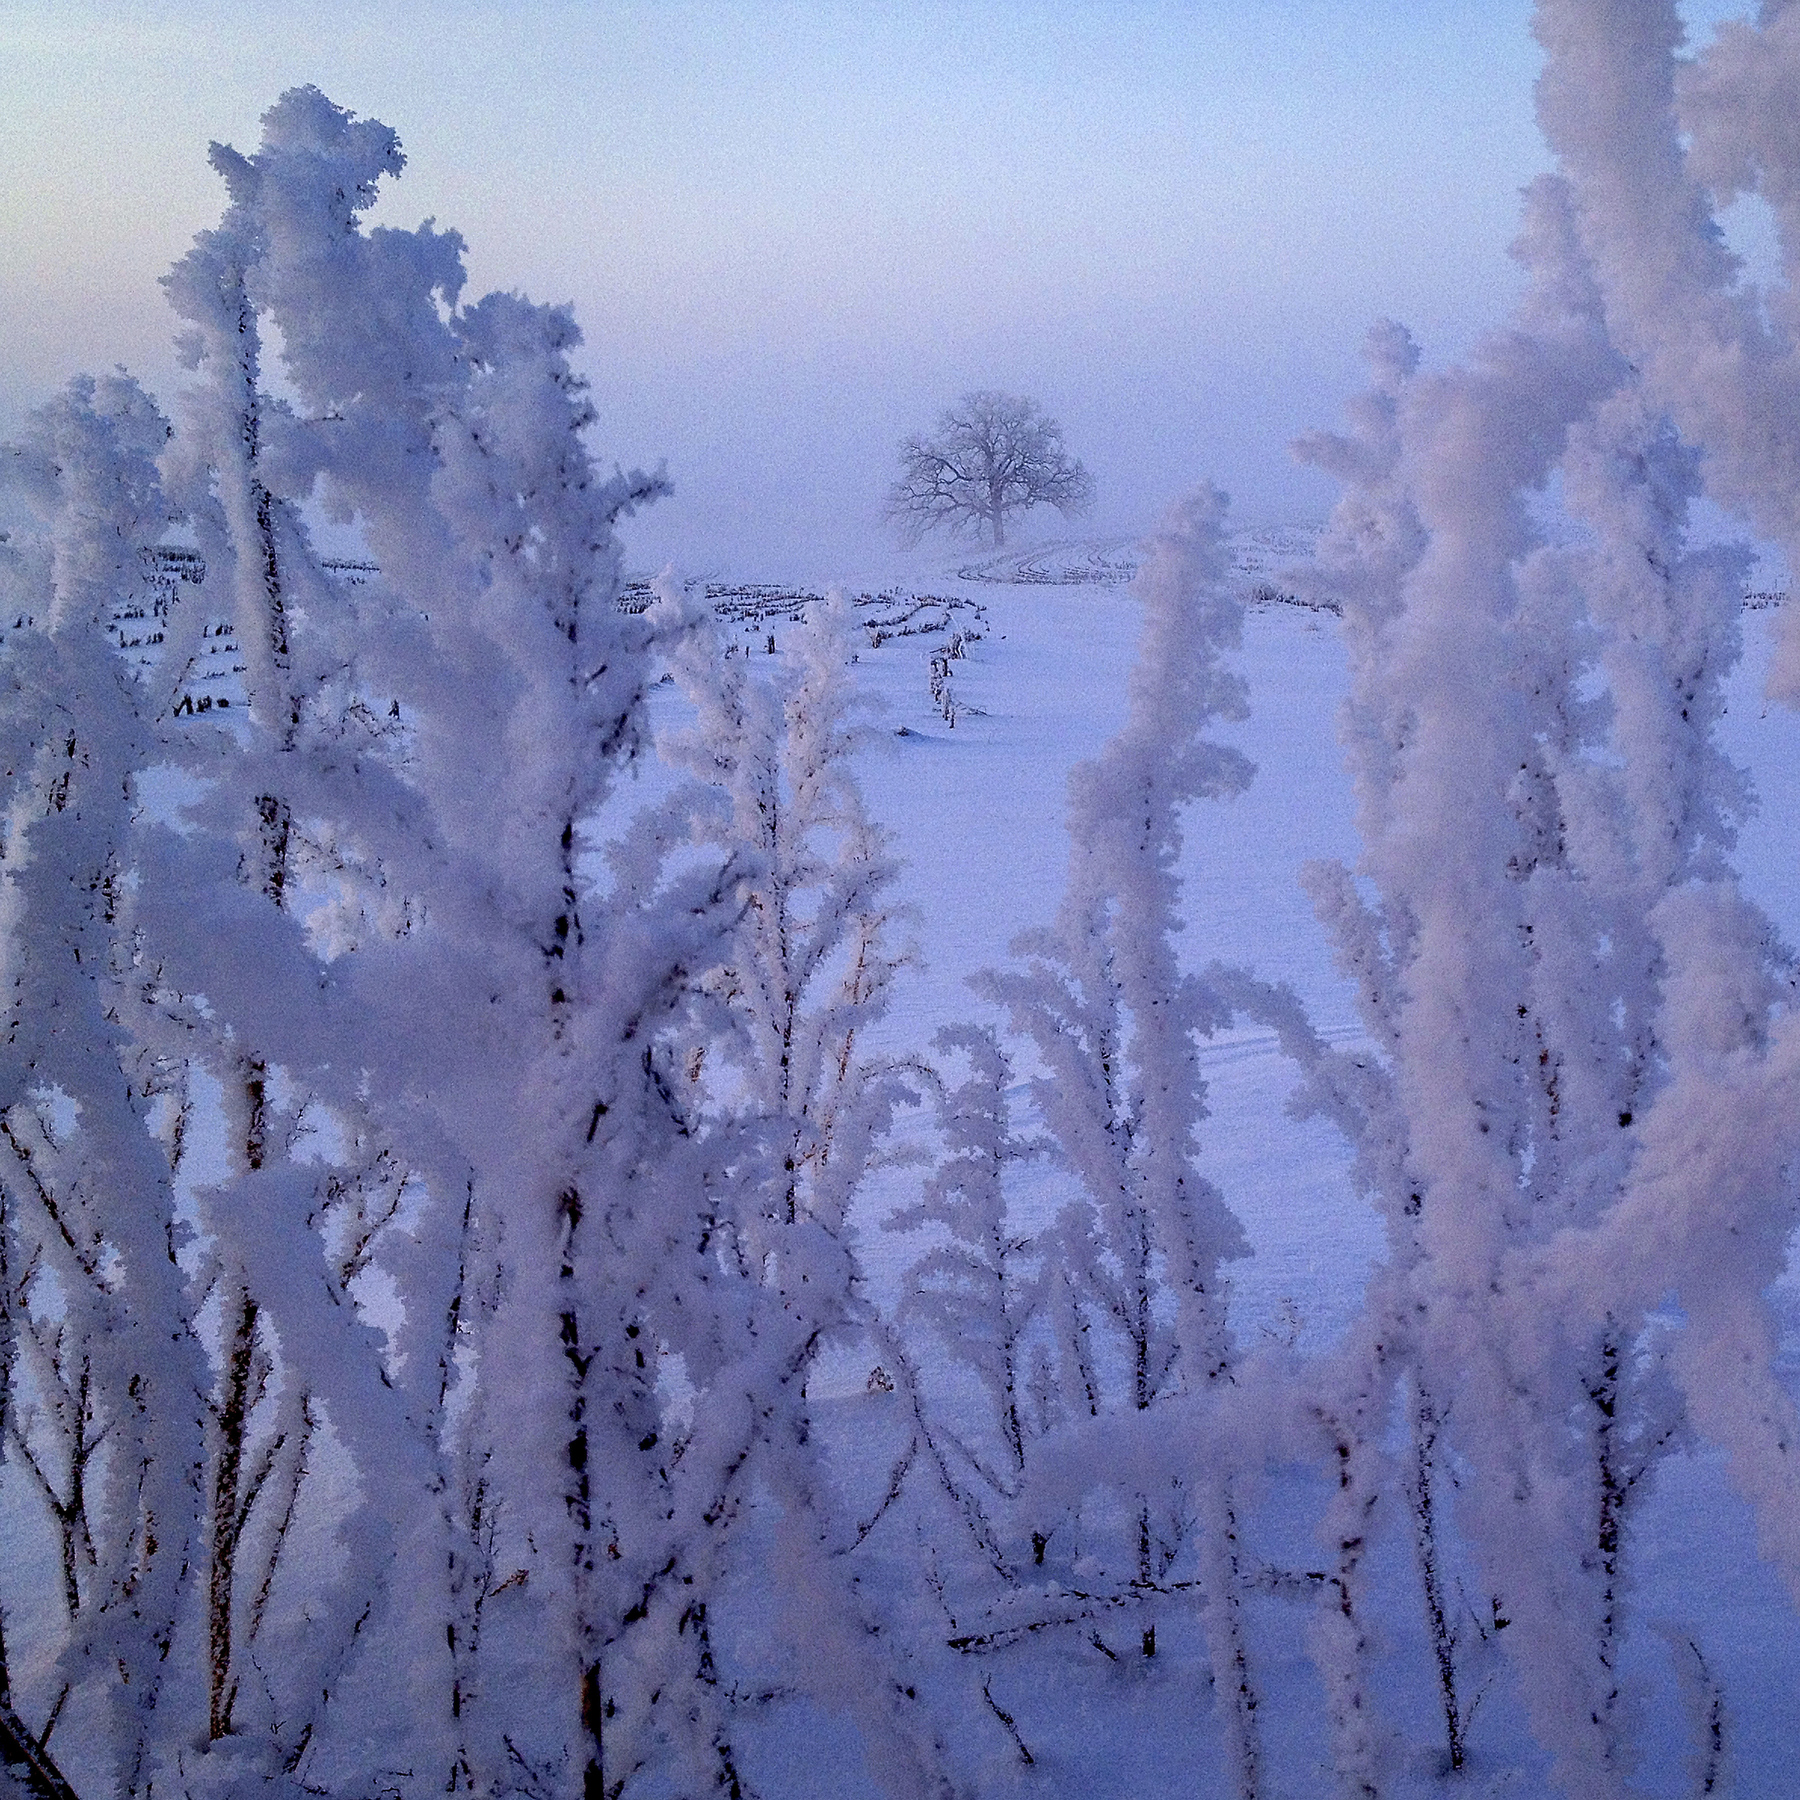 "Feb. 6, 2013. Like a scene from the land of fairy, ""That Tree"" rises ethereal from the enchanted mists with hoarfrost encrusting the landscape."